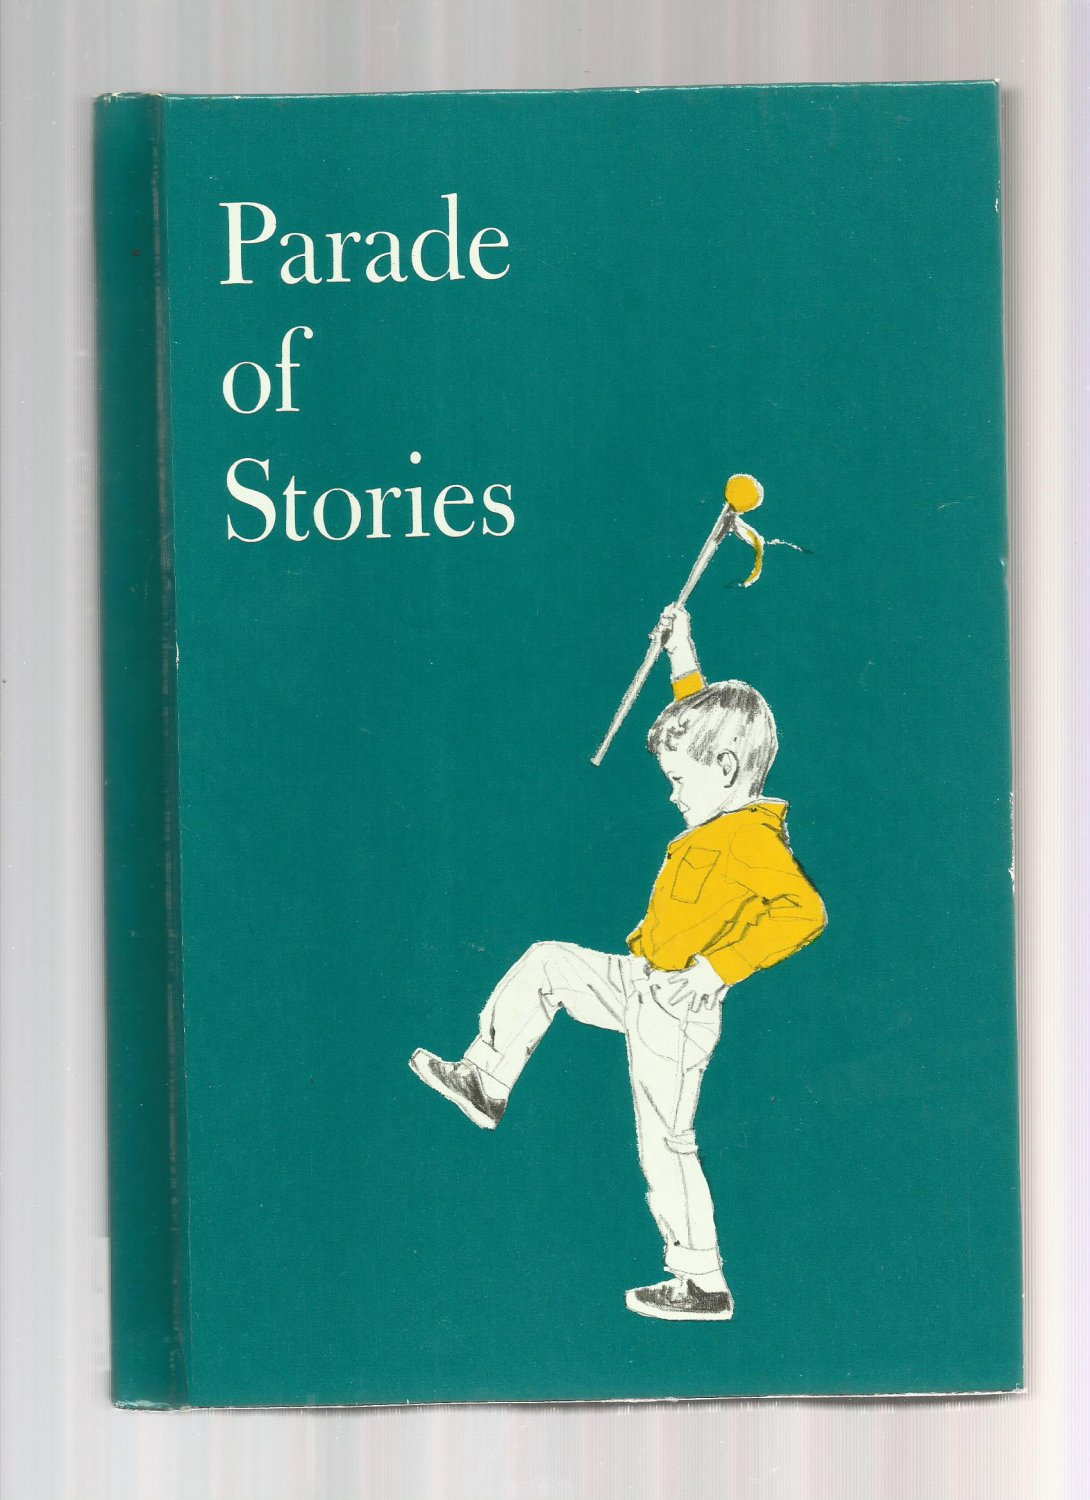 Parade of Stories, 1973 A Vintage Science Children's Book